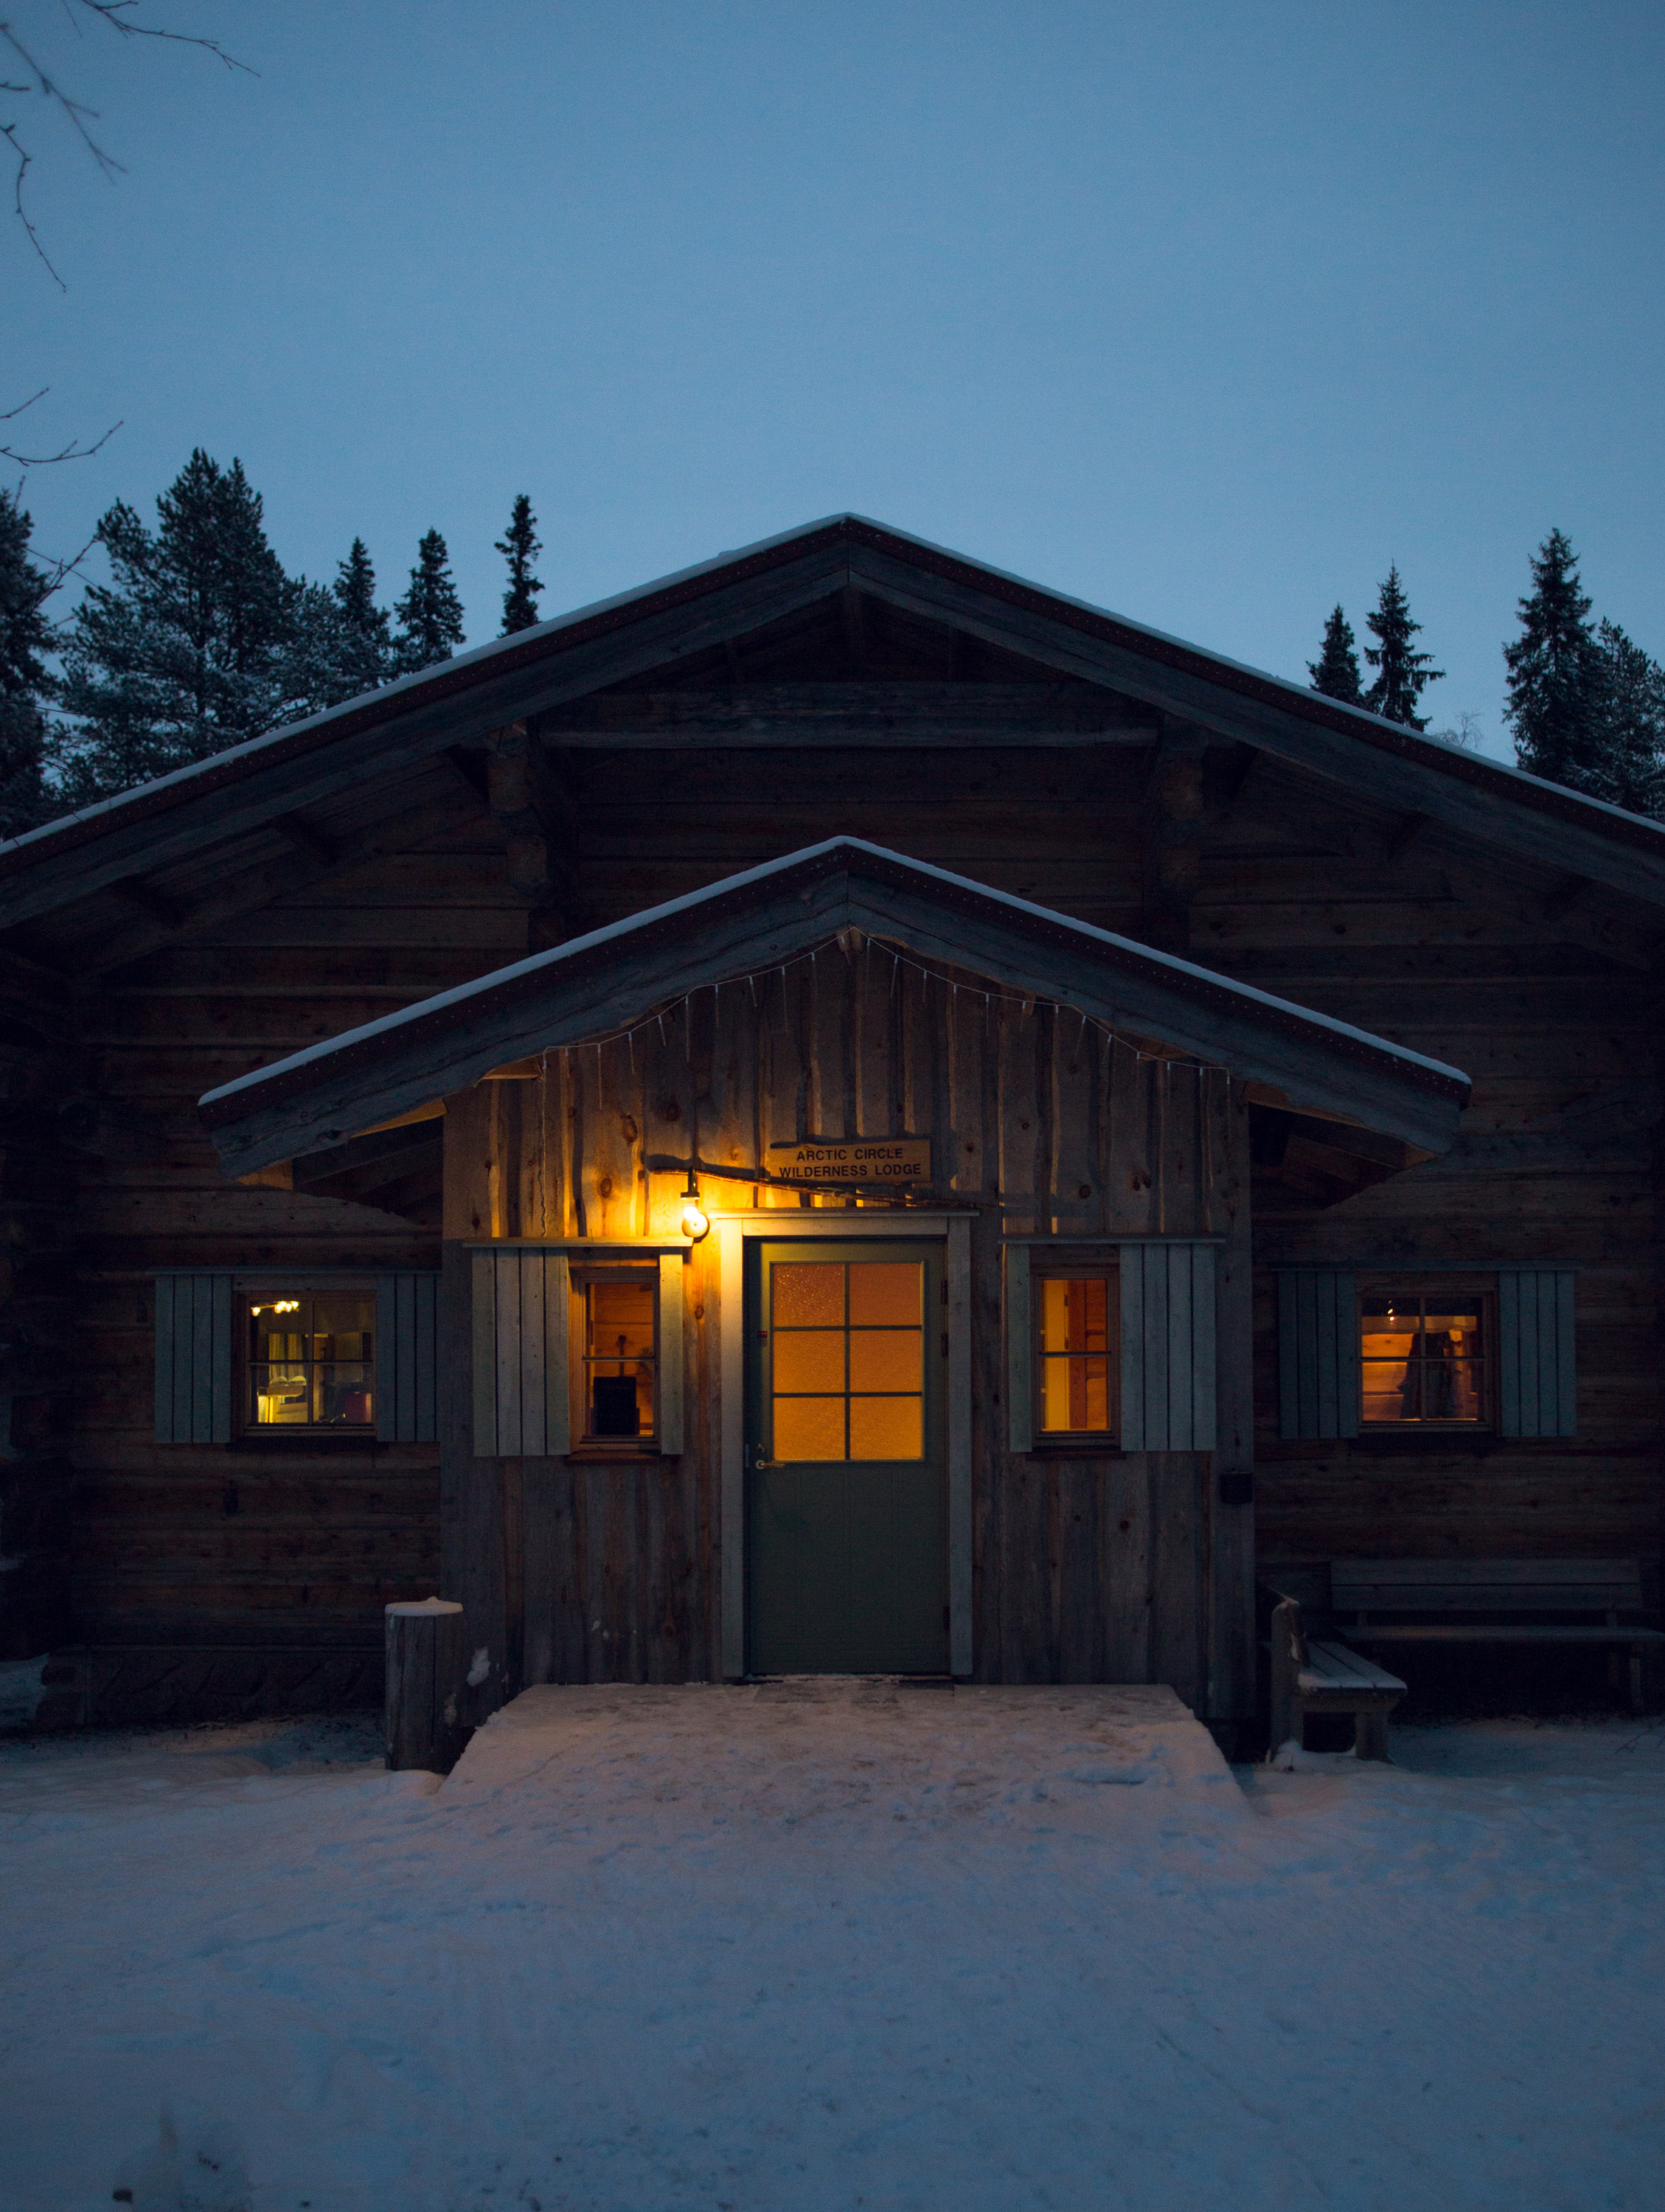 Entrance to the Arctic Wilderness Lodge, Rovaniemi, at 9 AM.